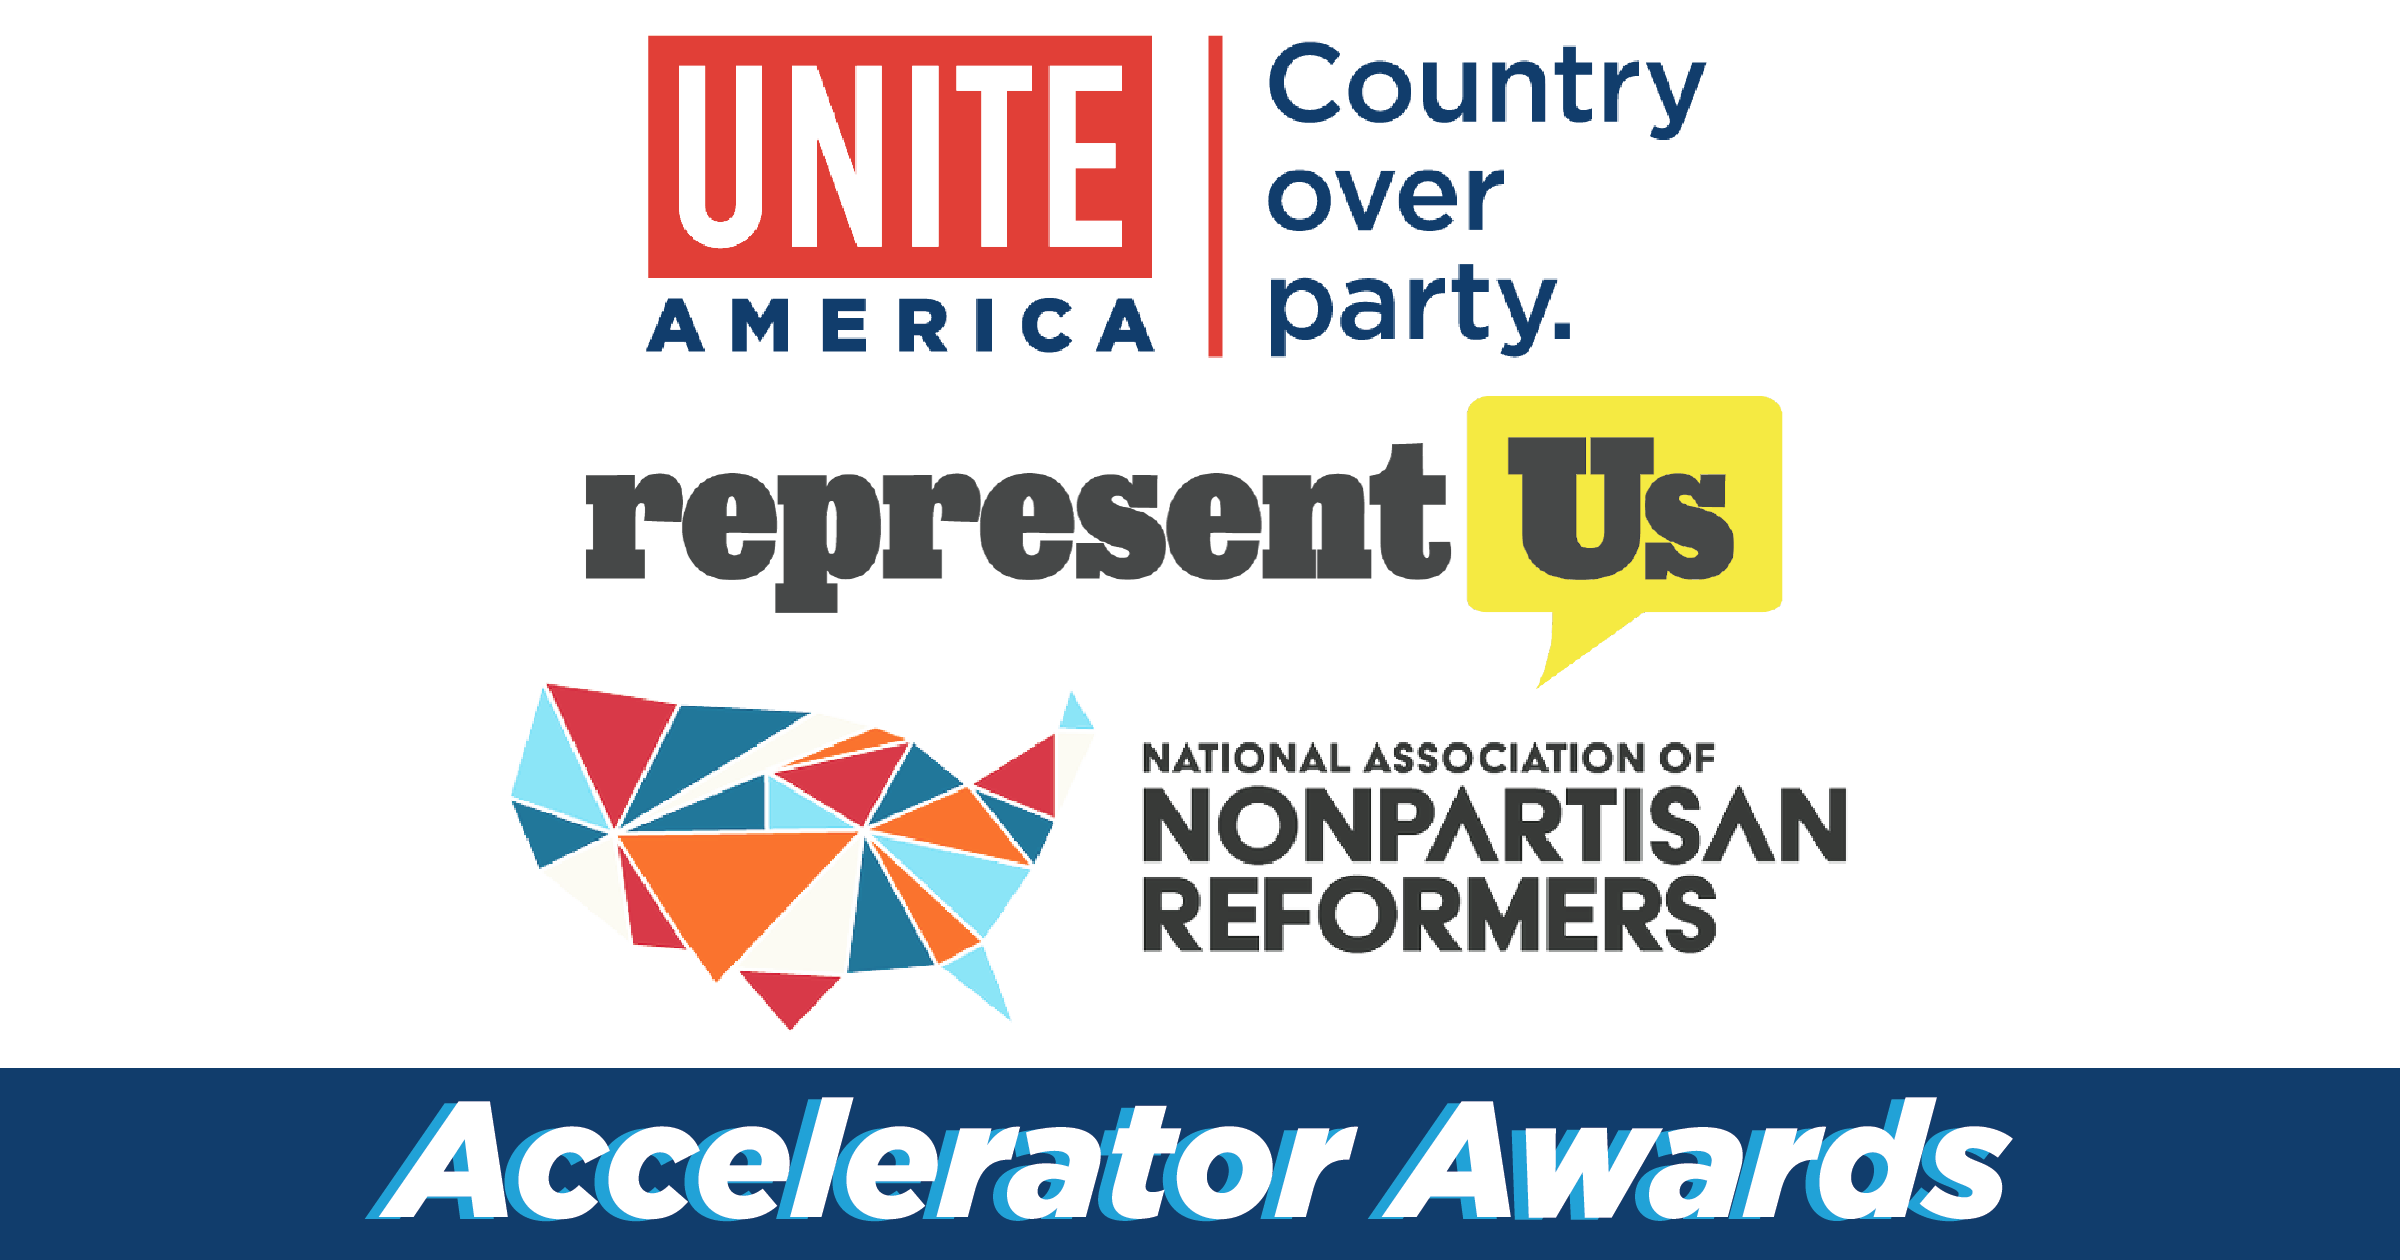 Call for Applications: Accelerator Awards Offers $50k in Seed Funding